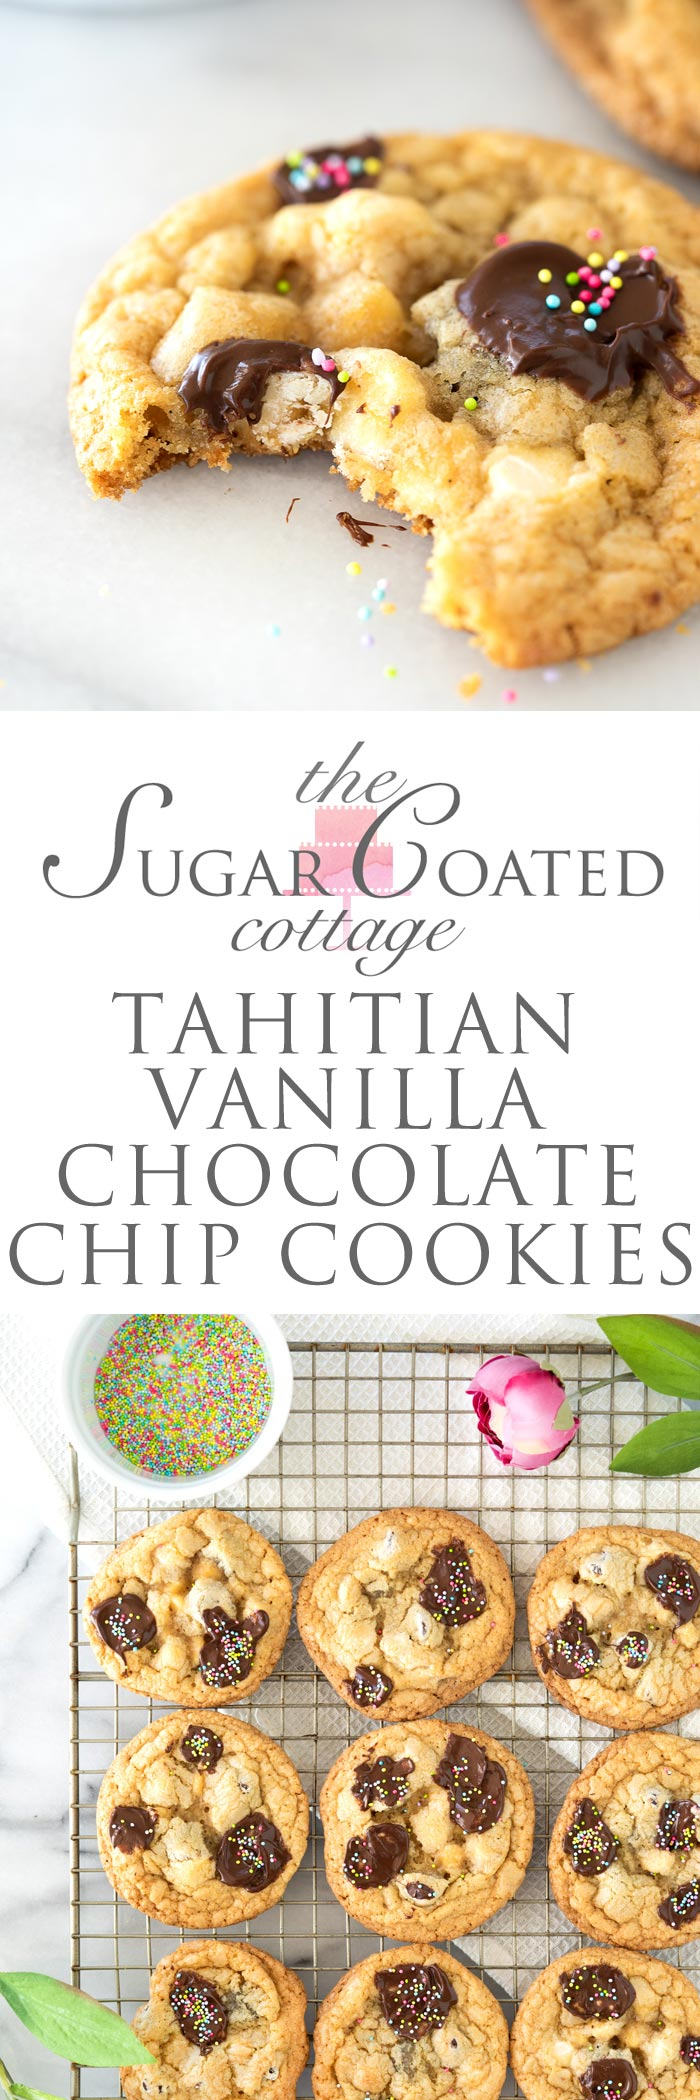 Tahitian Vanilla Chocolate Chip Cookie Recipe. The best you'll ever have! | thesugarcoatedcottage.com #chocolatechipcookie #cookie #recipe #chocolate